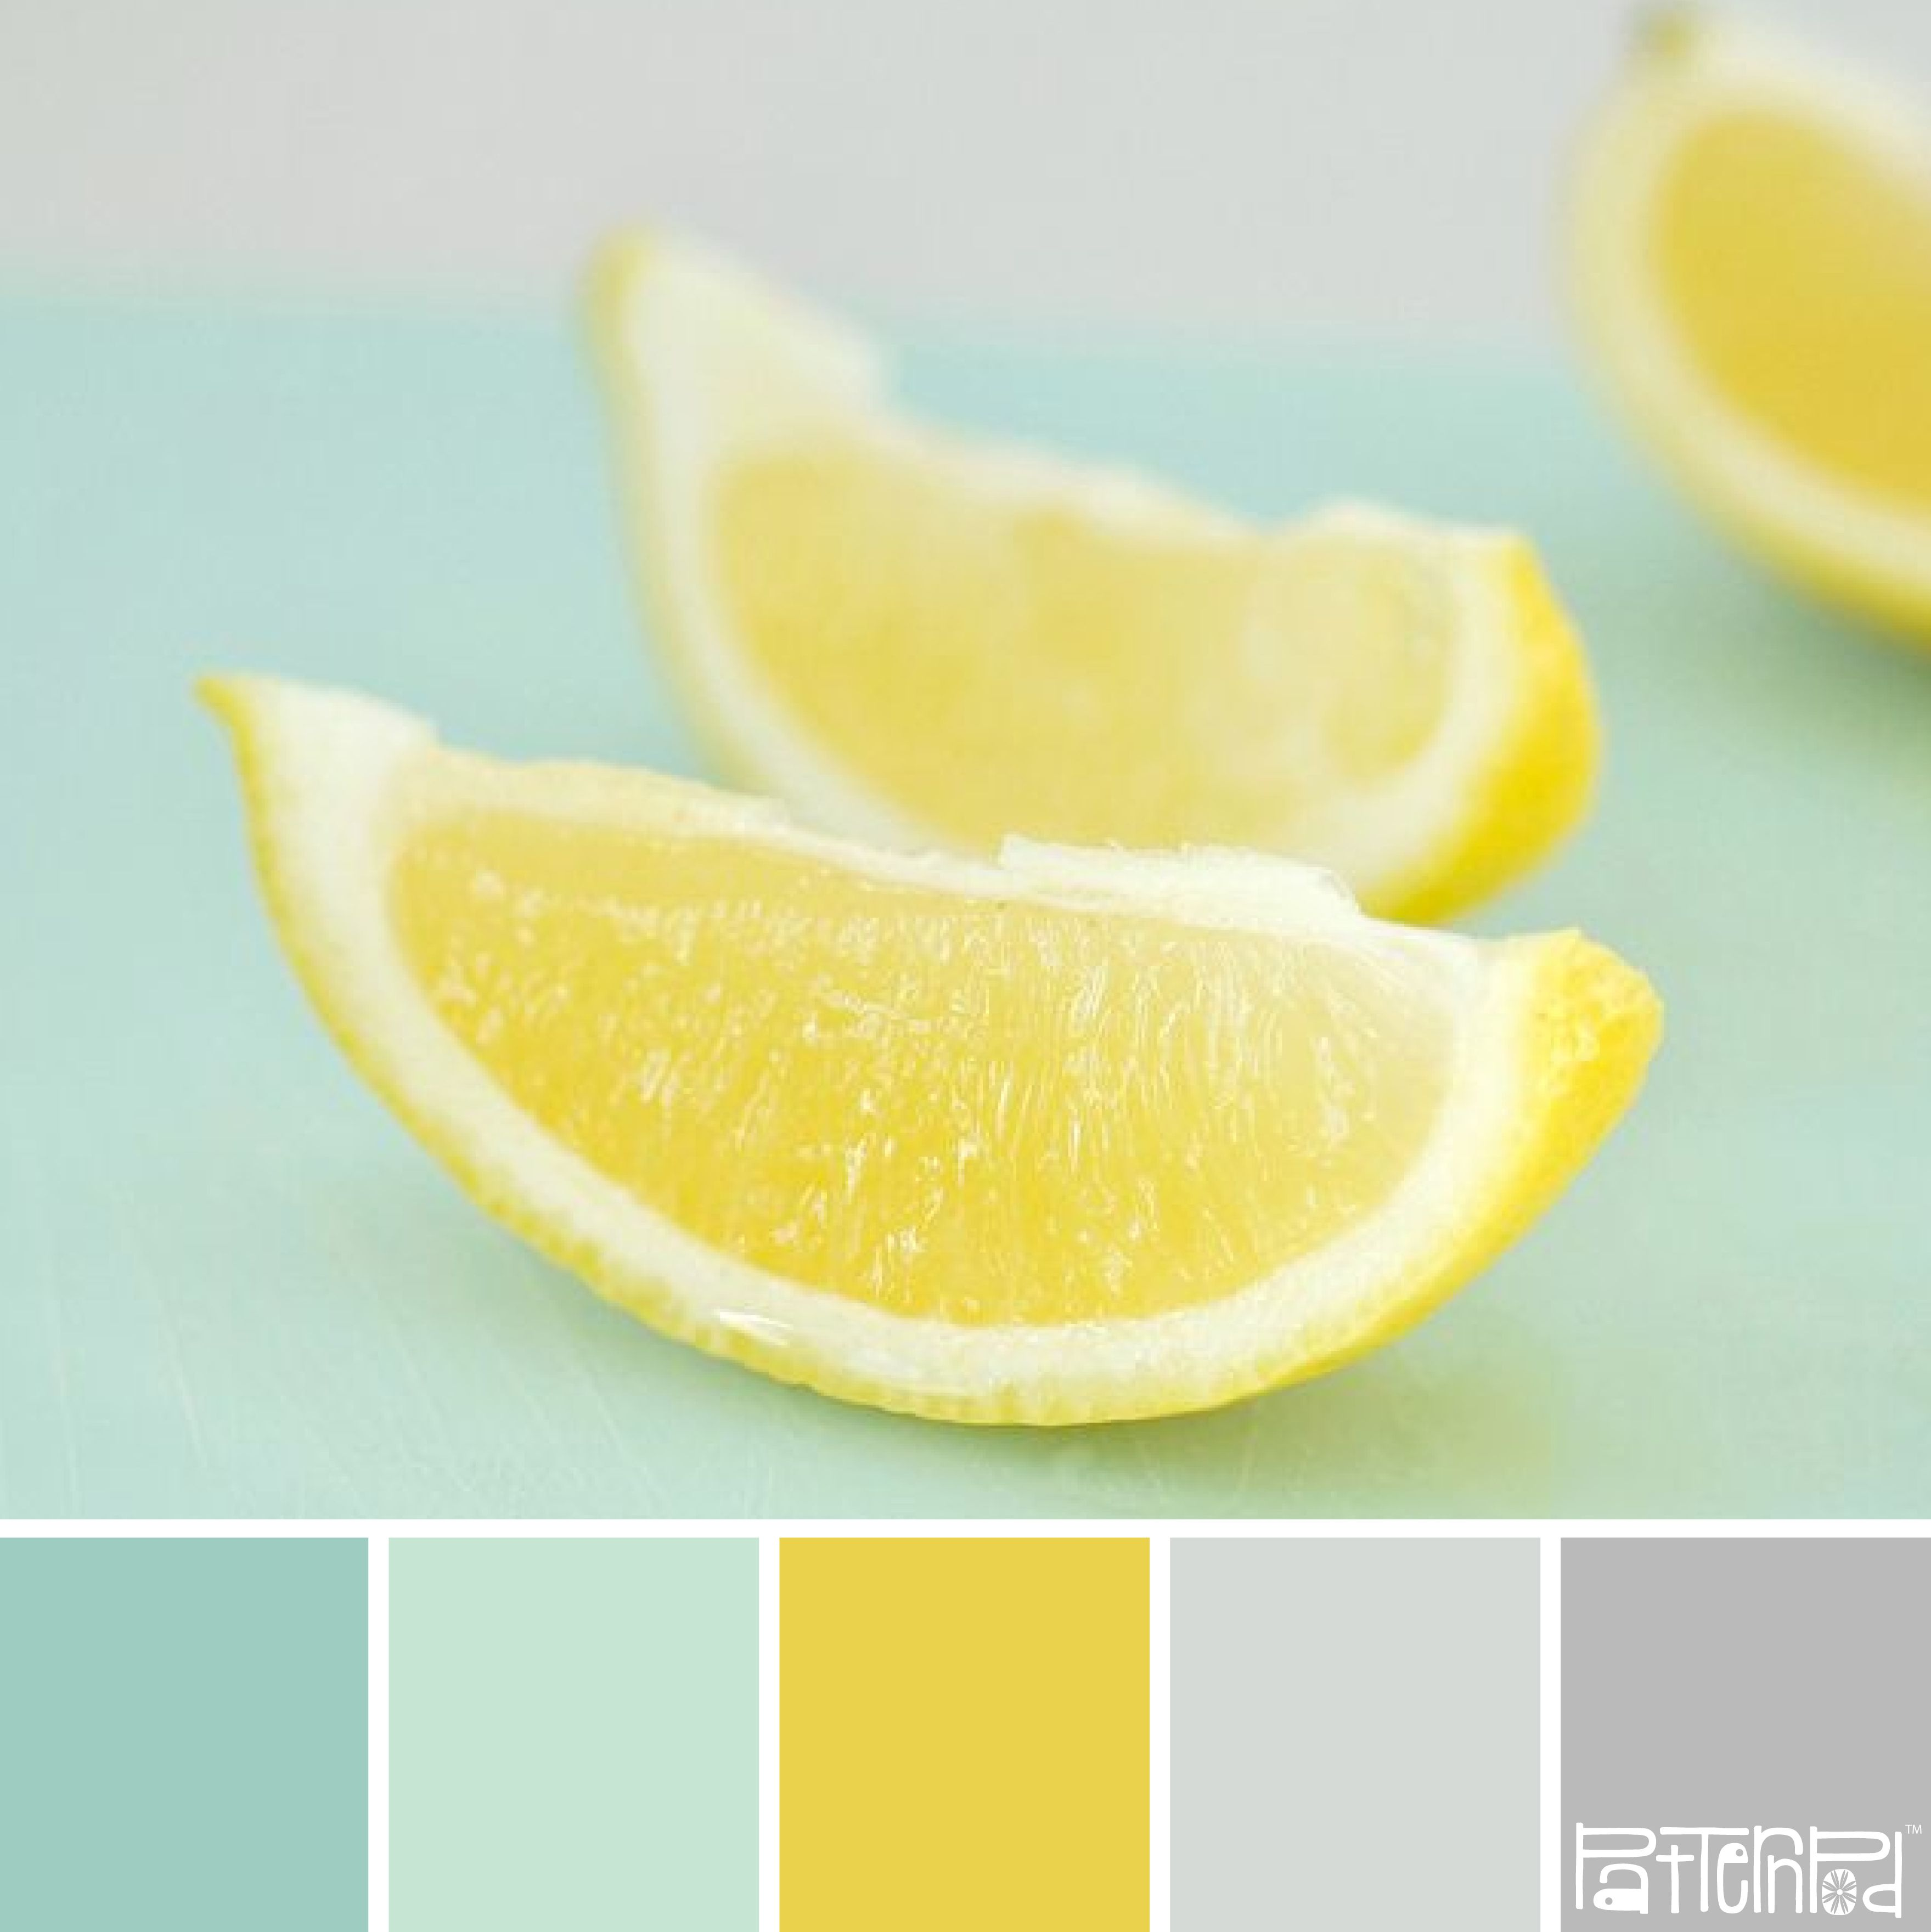 Wandfarbe Mint Kombinieren Lemon Mint Color Palette I 39m In Love With Color Mint Right